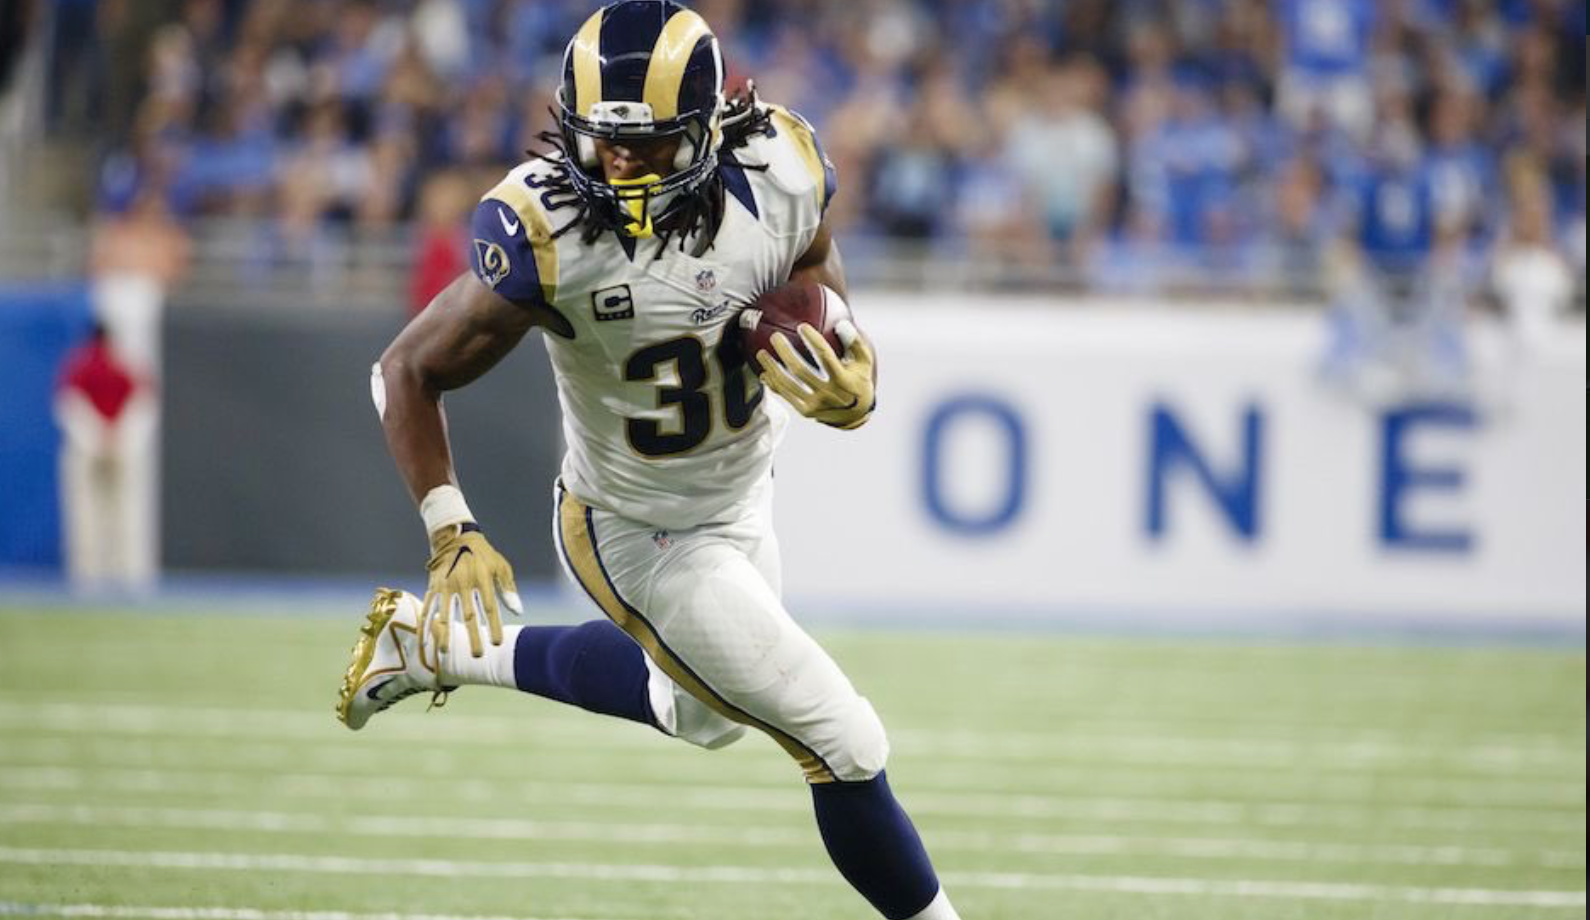 Todd Gurley Named NFC fensive Player The Week CaliSports News